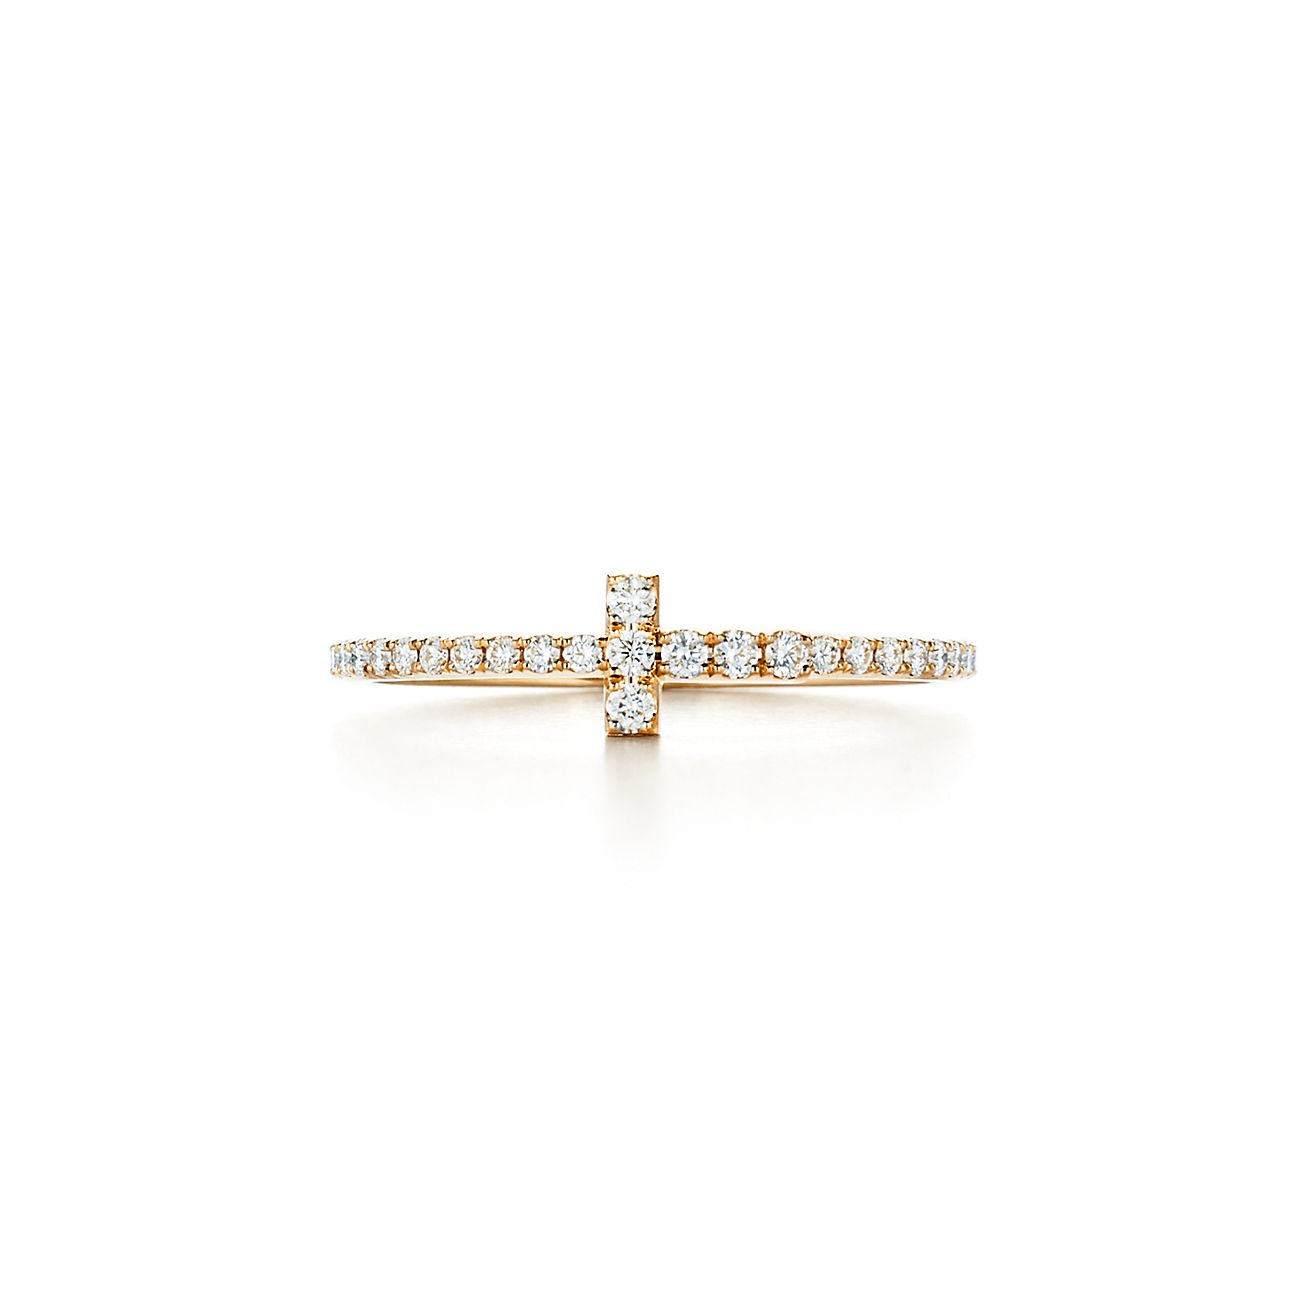 Tiffany T wire ring in 18k gold with diamonds. | Tiffany & Co.